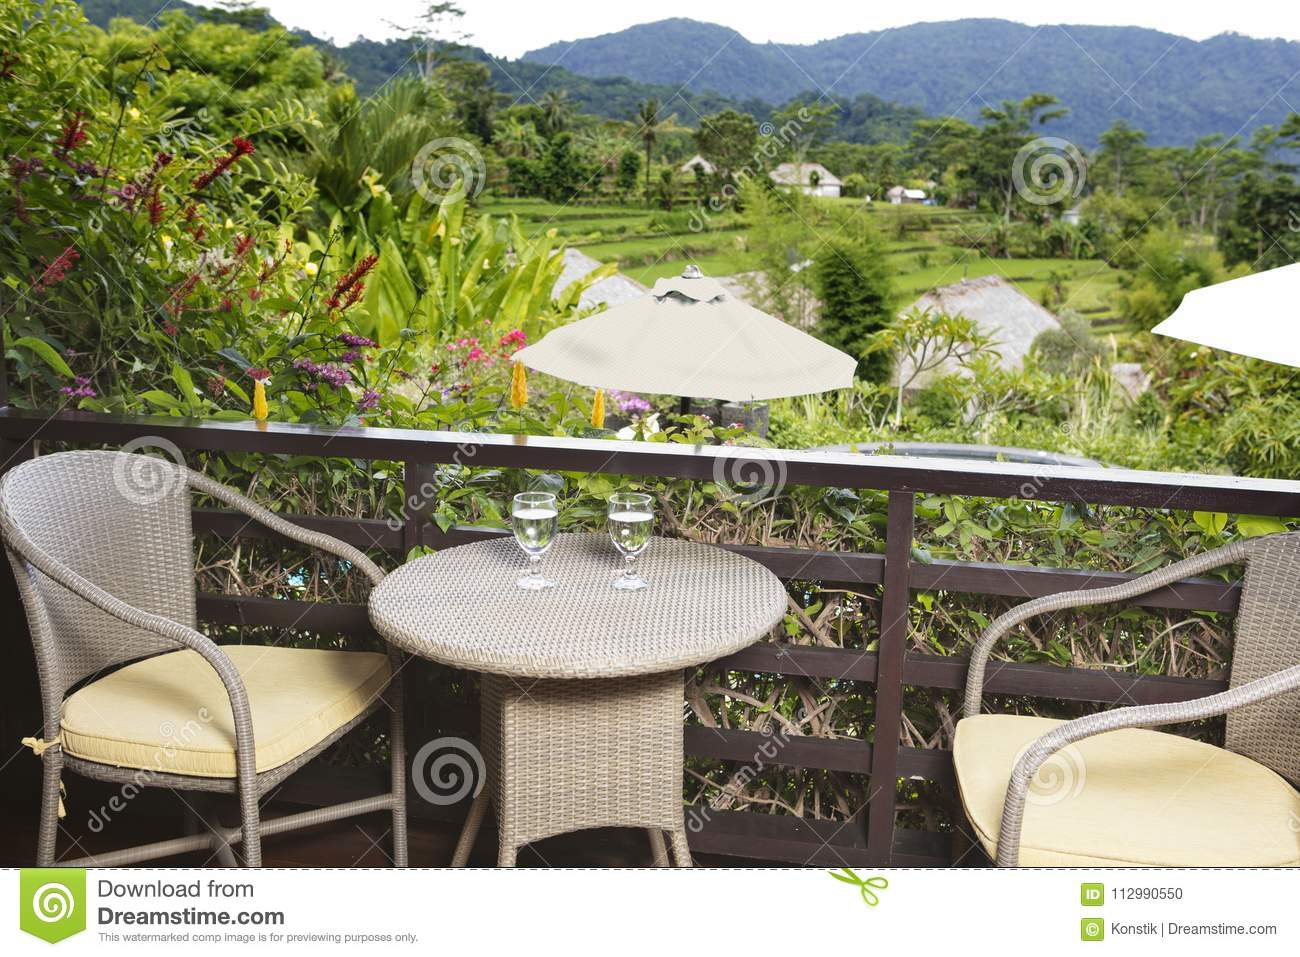 Table with glasses on an open balcony overlooking rice terraces and mountains